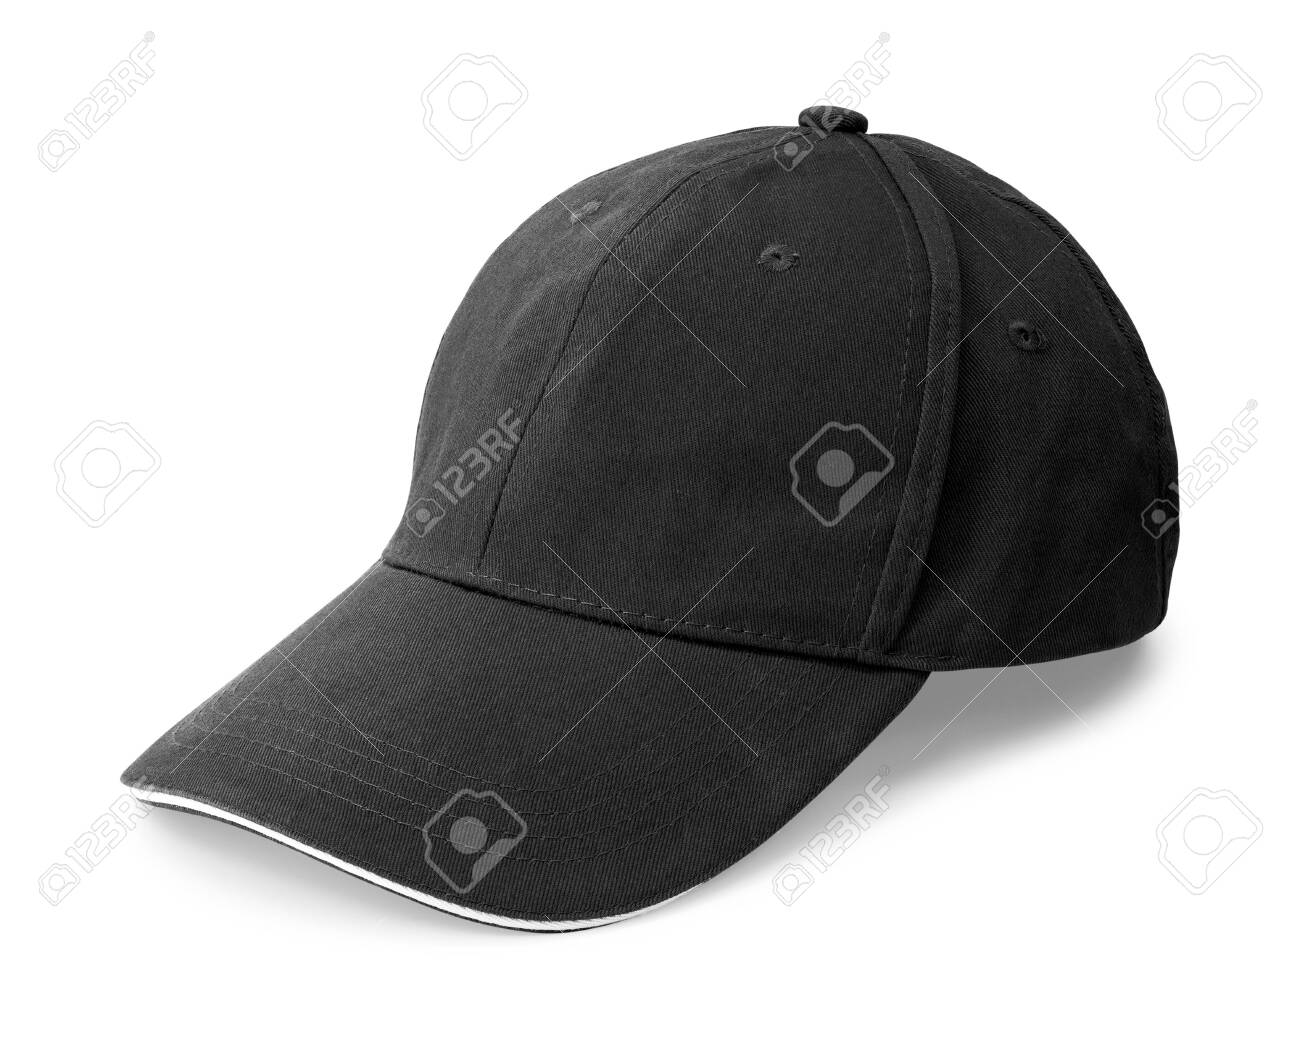 Black cap isolated on white background. Template of baseball cap in side view. ( Clipping path ) - 120326452